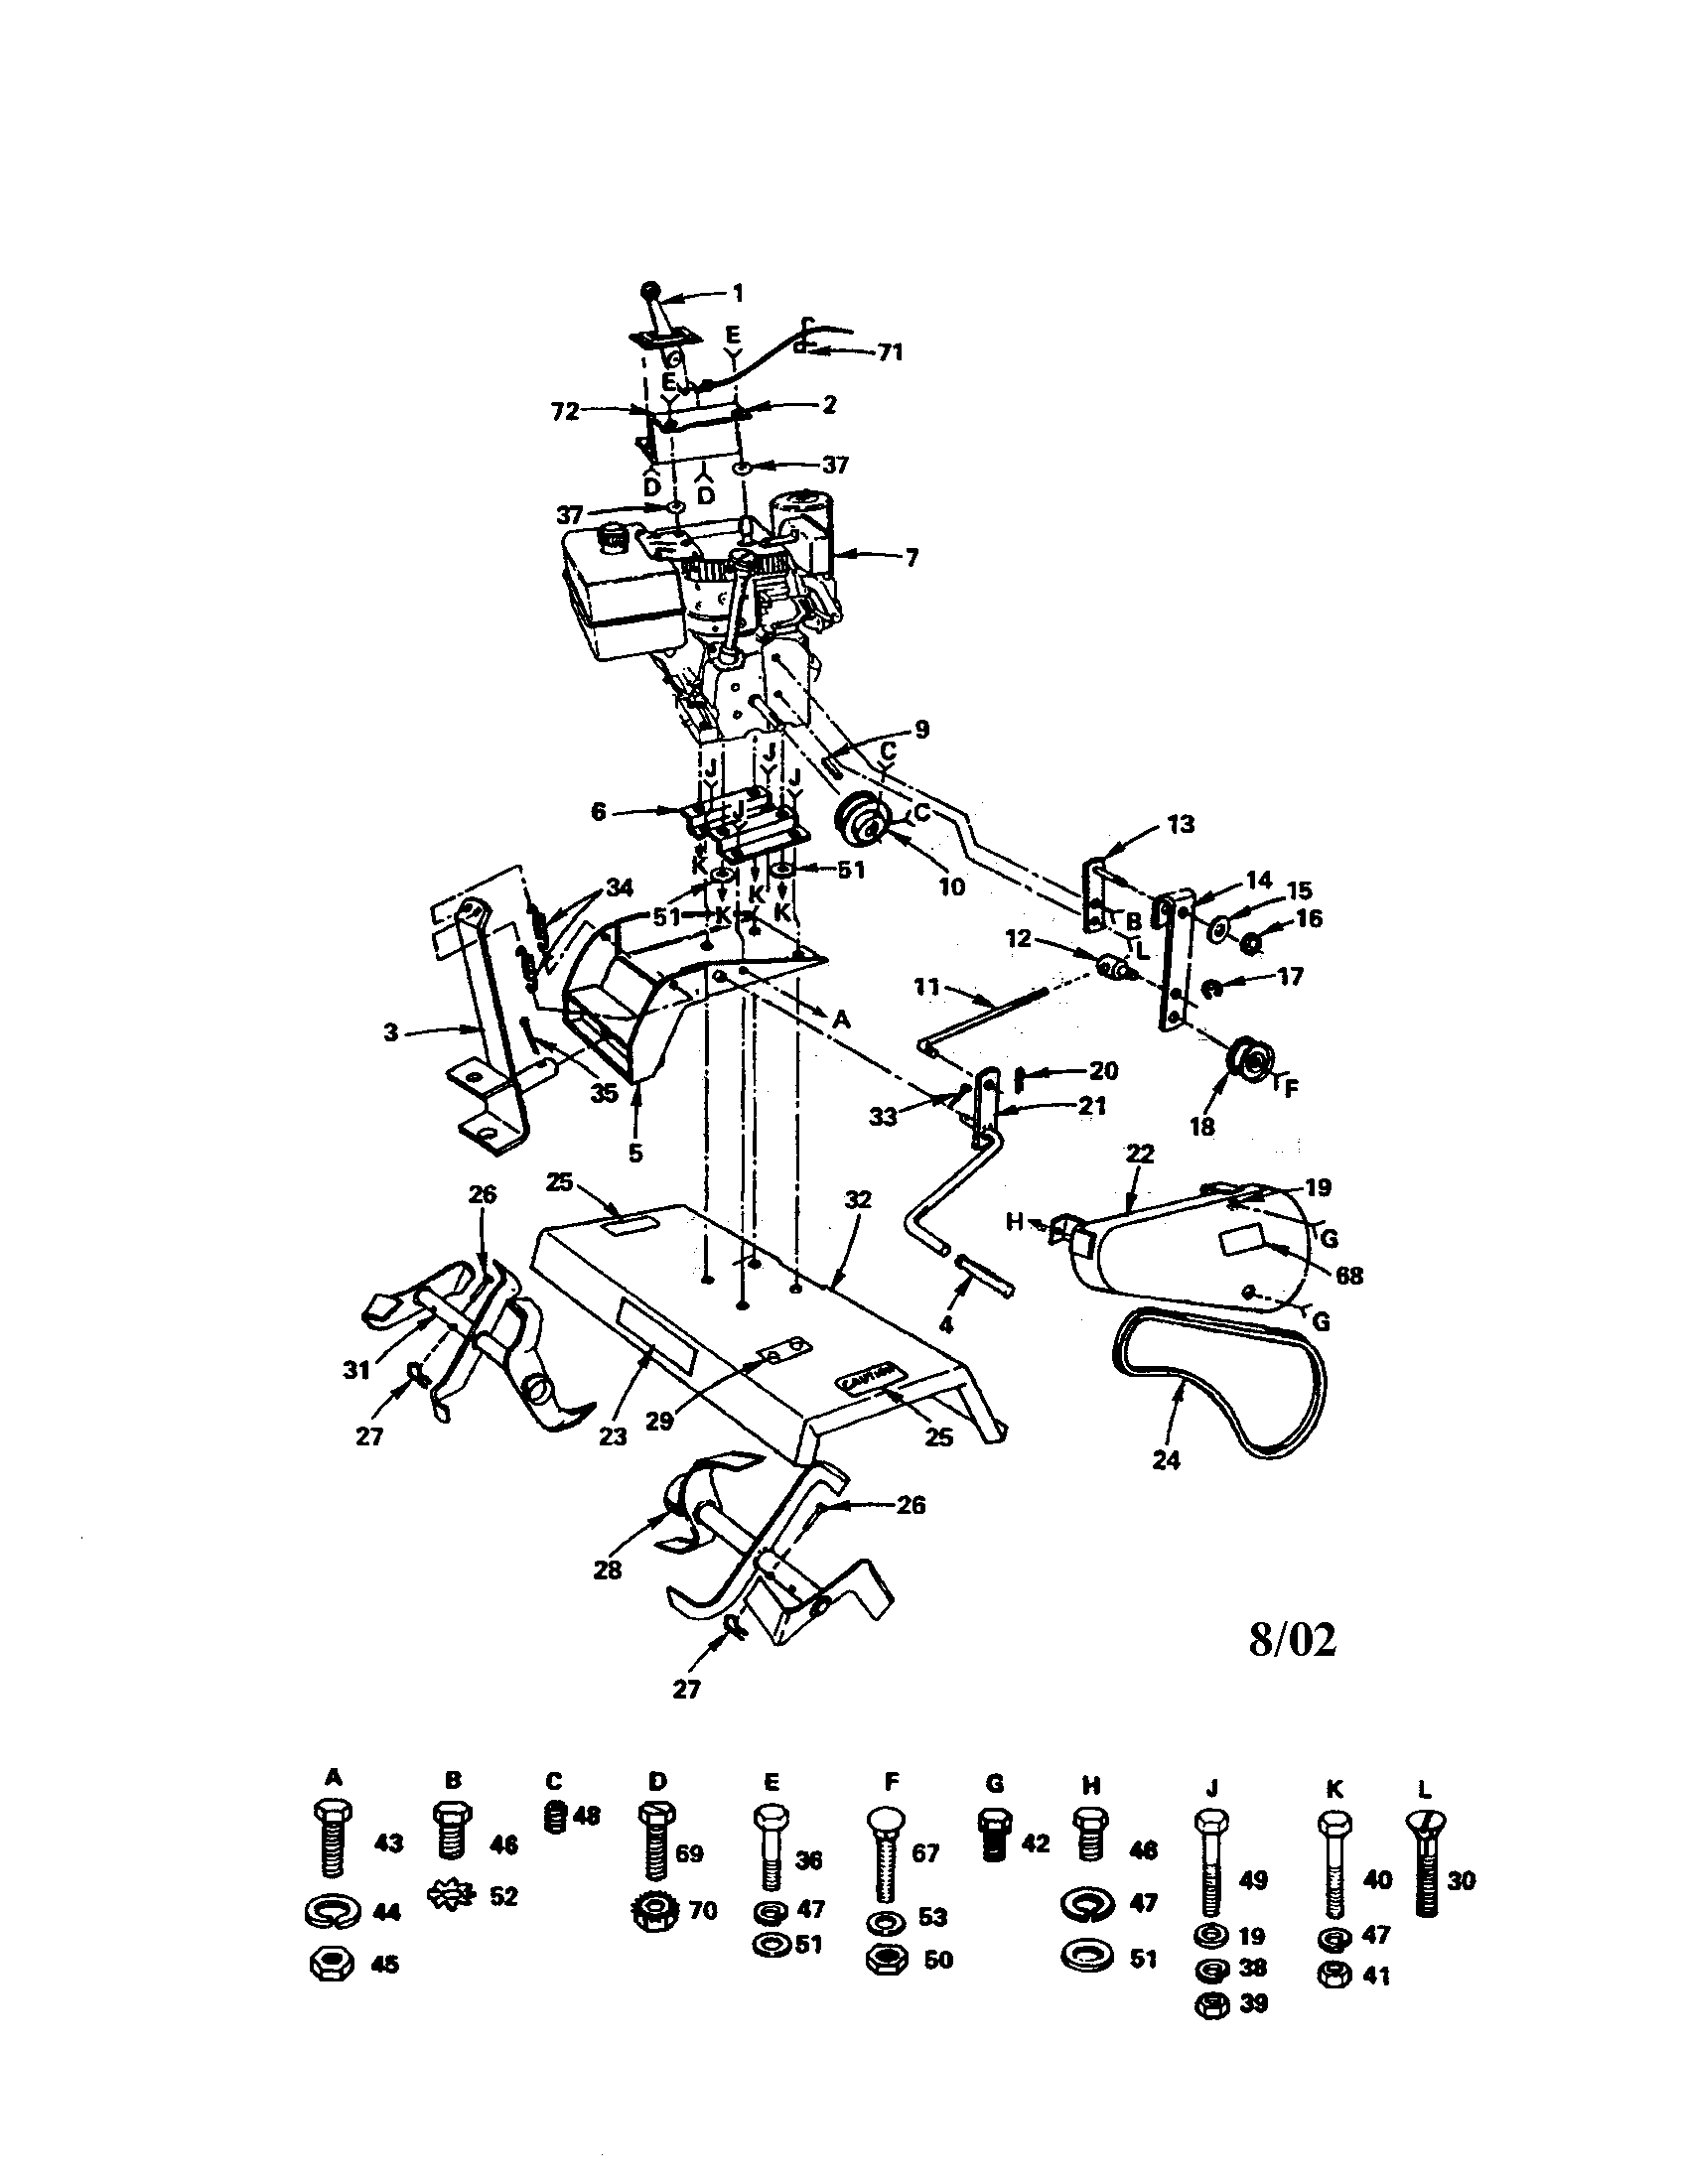 International 454 Tractor Wiring Diagram 40 Images Case Ih Schematic P0208082 00001resize6652c863 Diagrams 600467